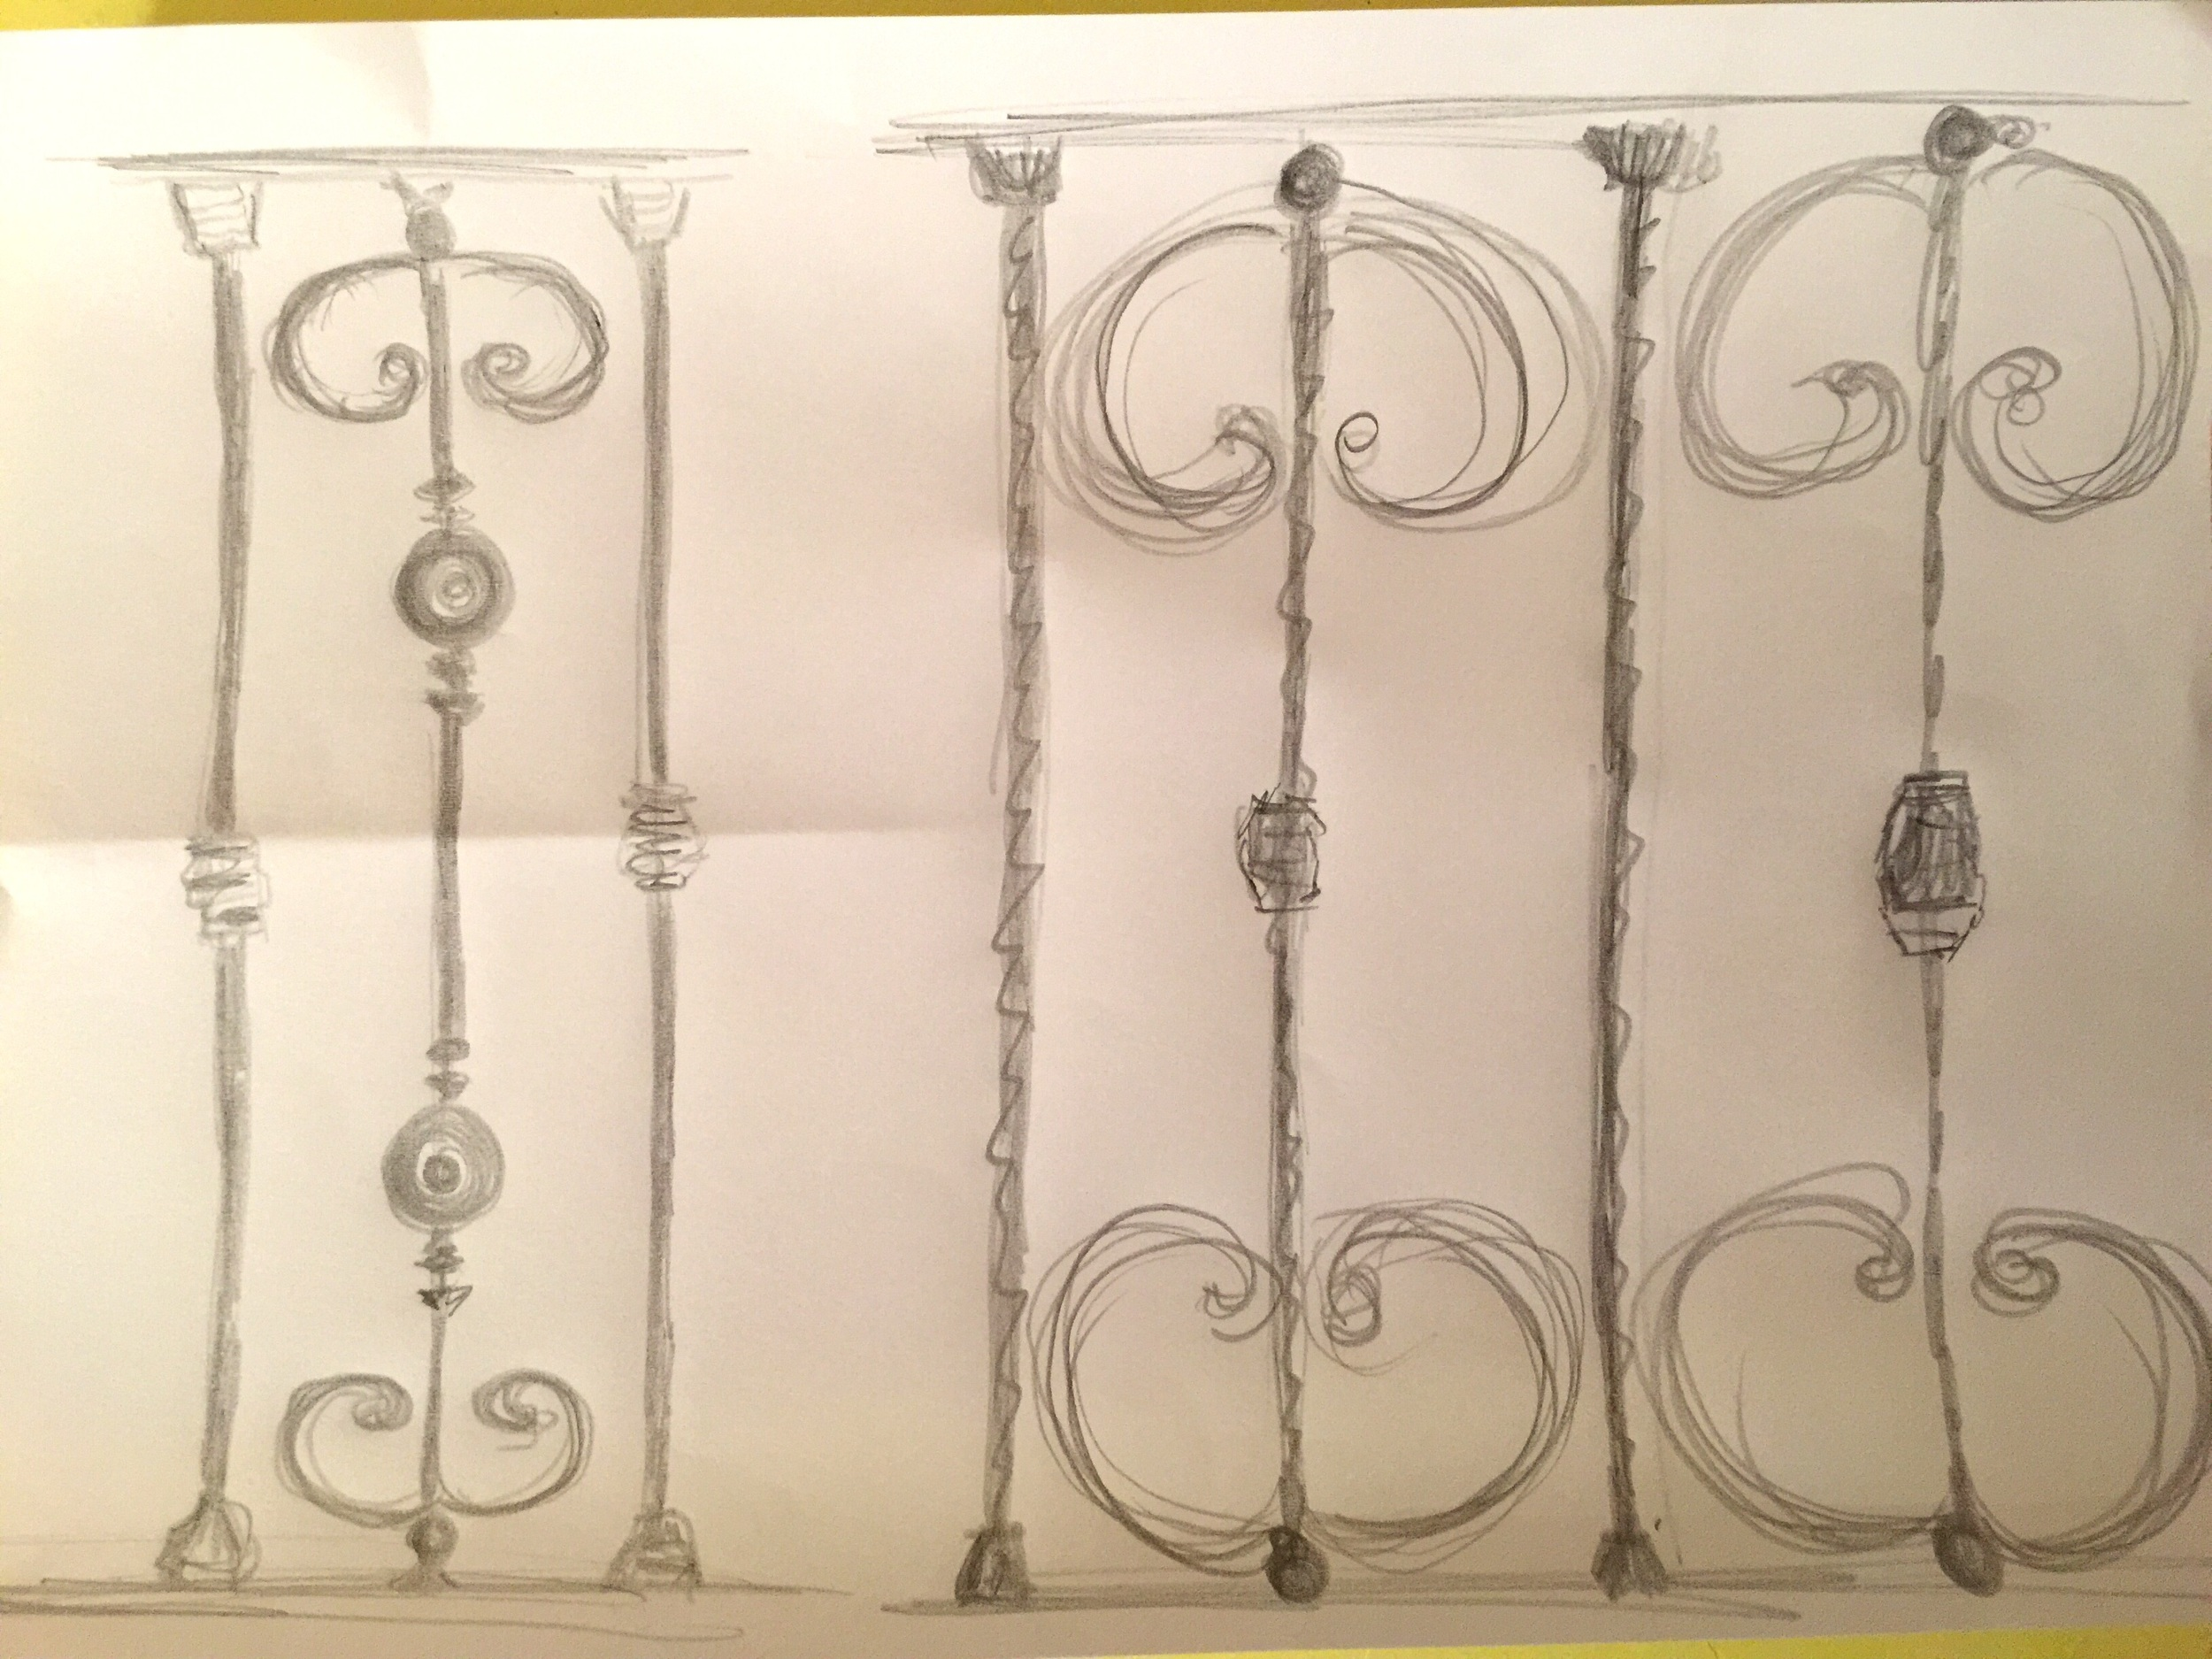 playing with designs for the WROUGHT iron balcony railings